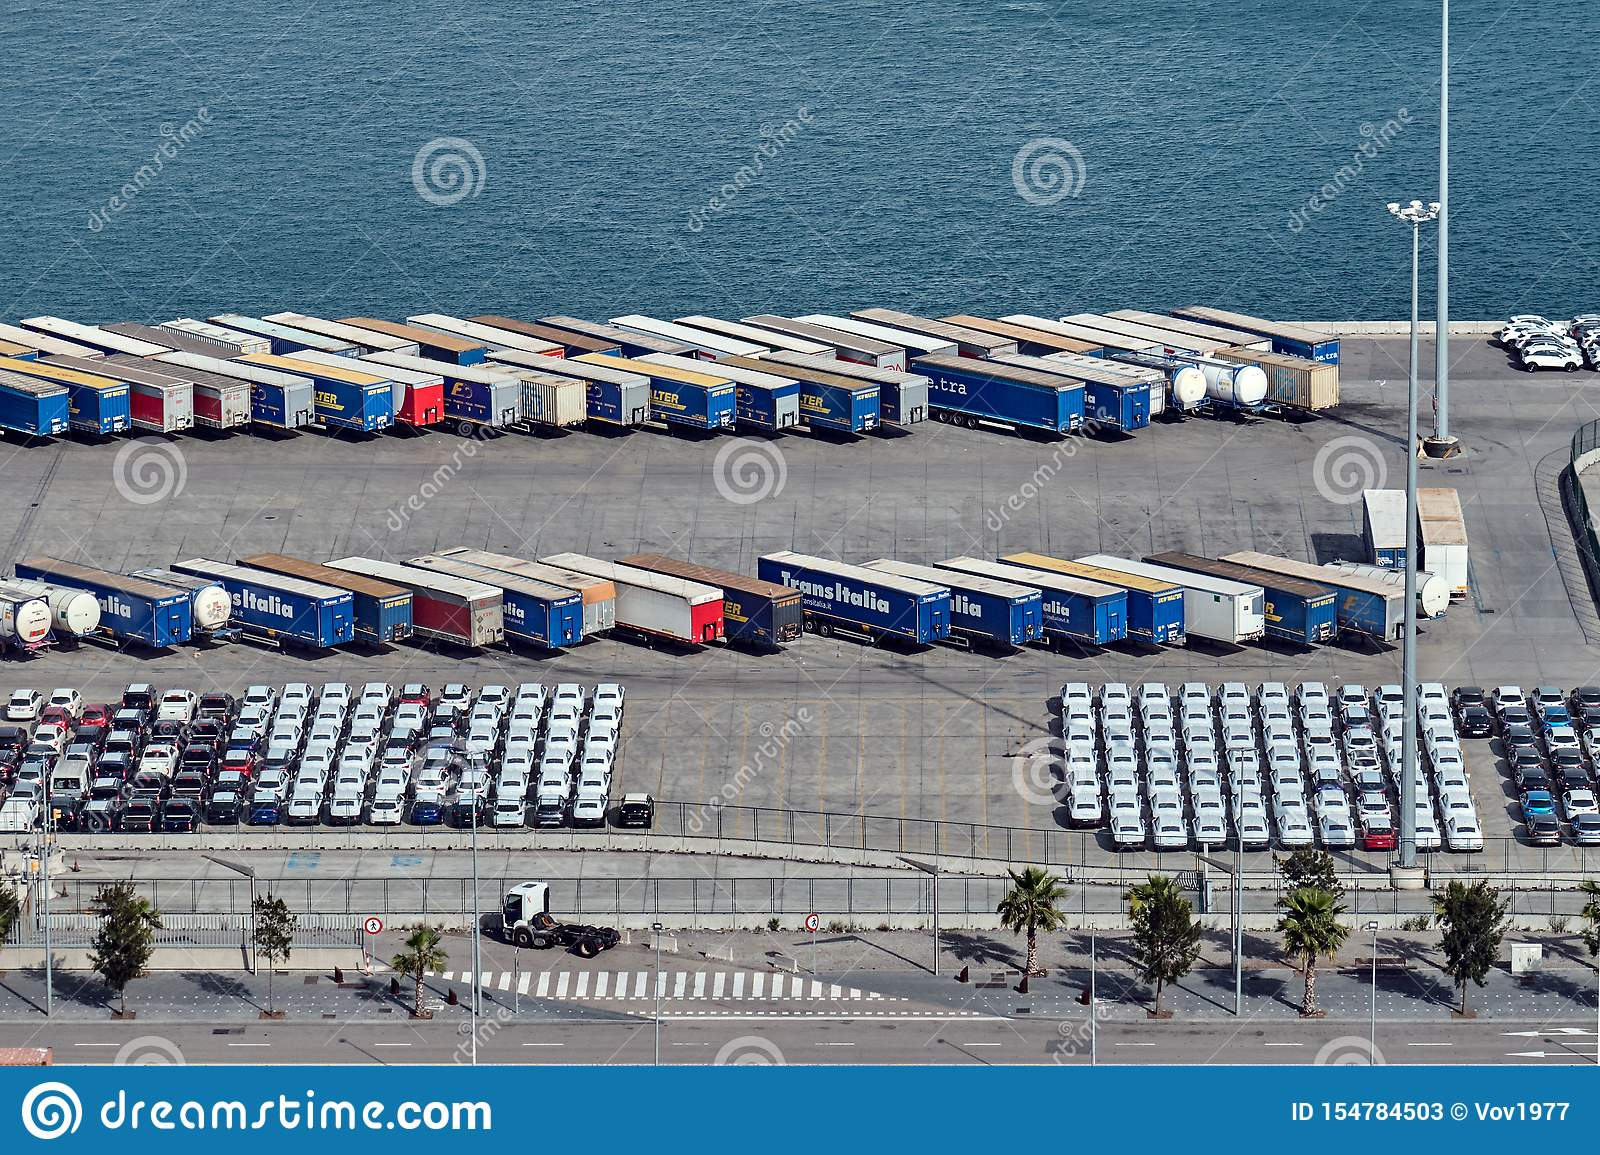 Barcelona, Spain - May, 27 2018: Cars, trucks and lorries parked at the Port of Barcelona